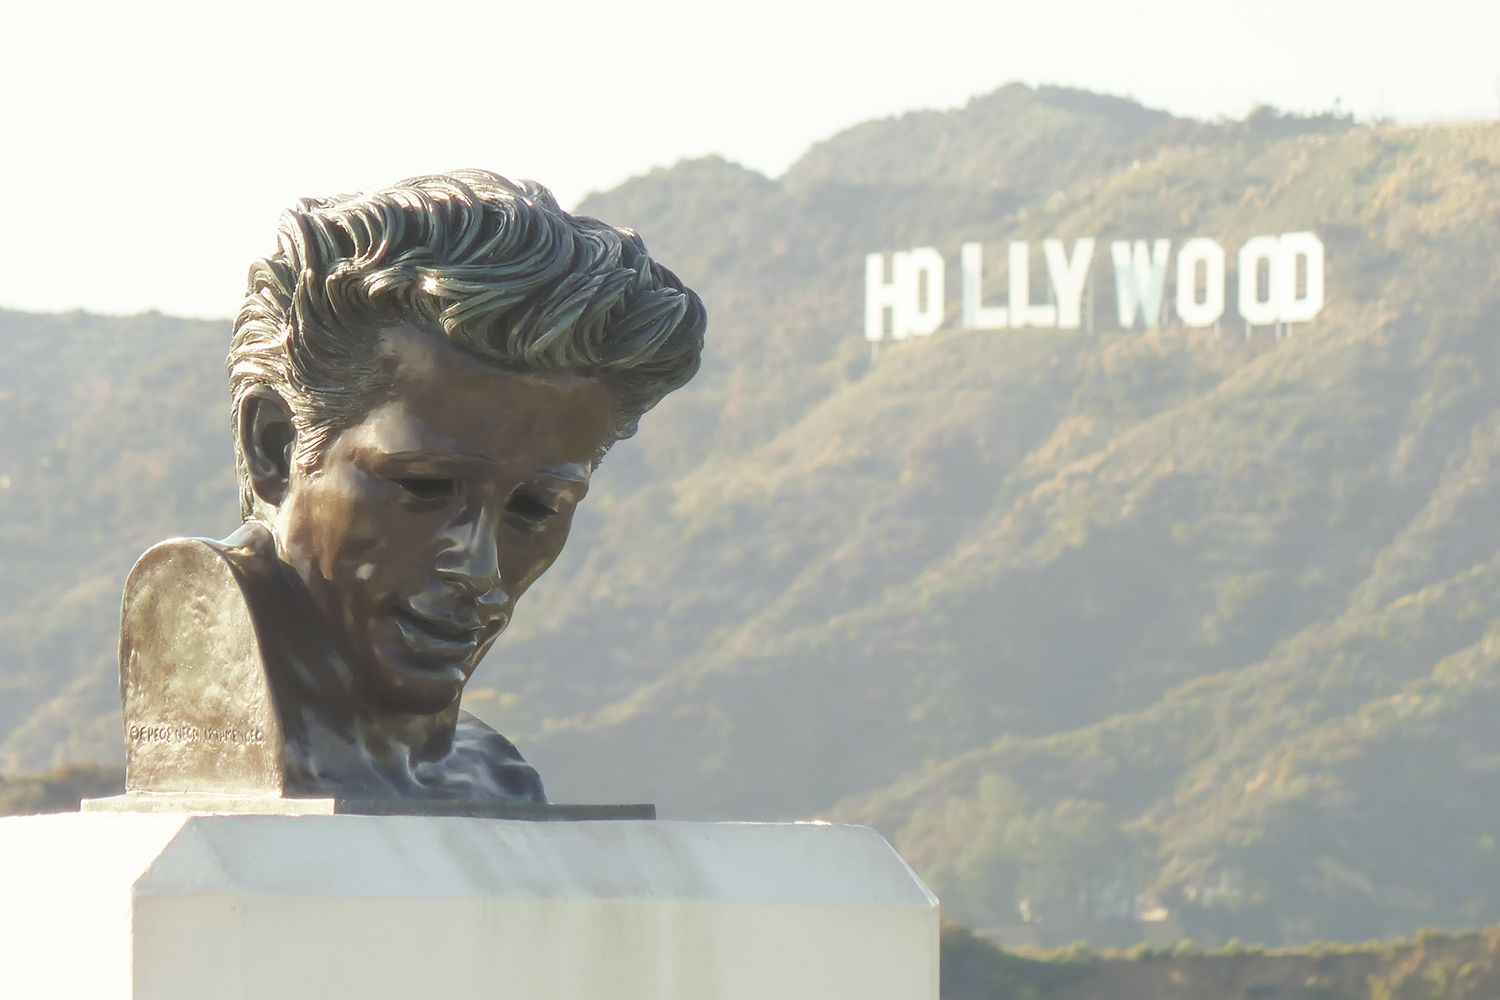 James Dean Bust and Hollywood Sign from Griffith Observatory